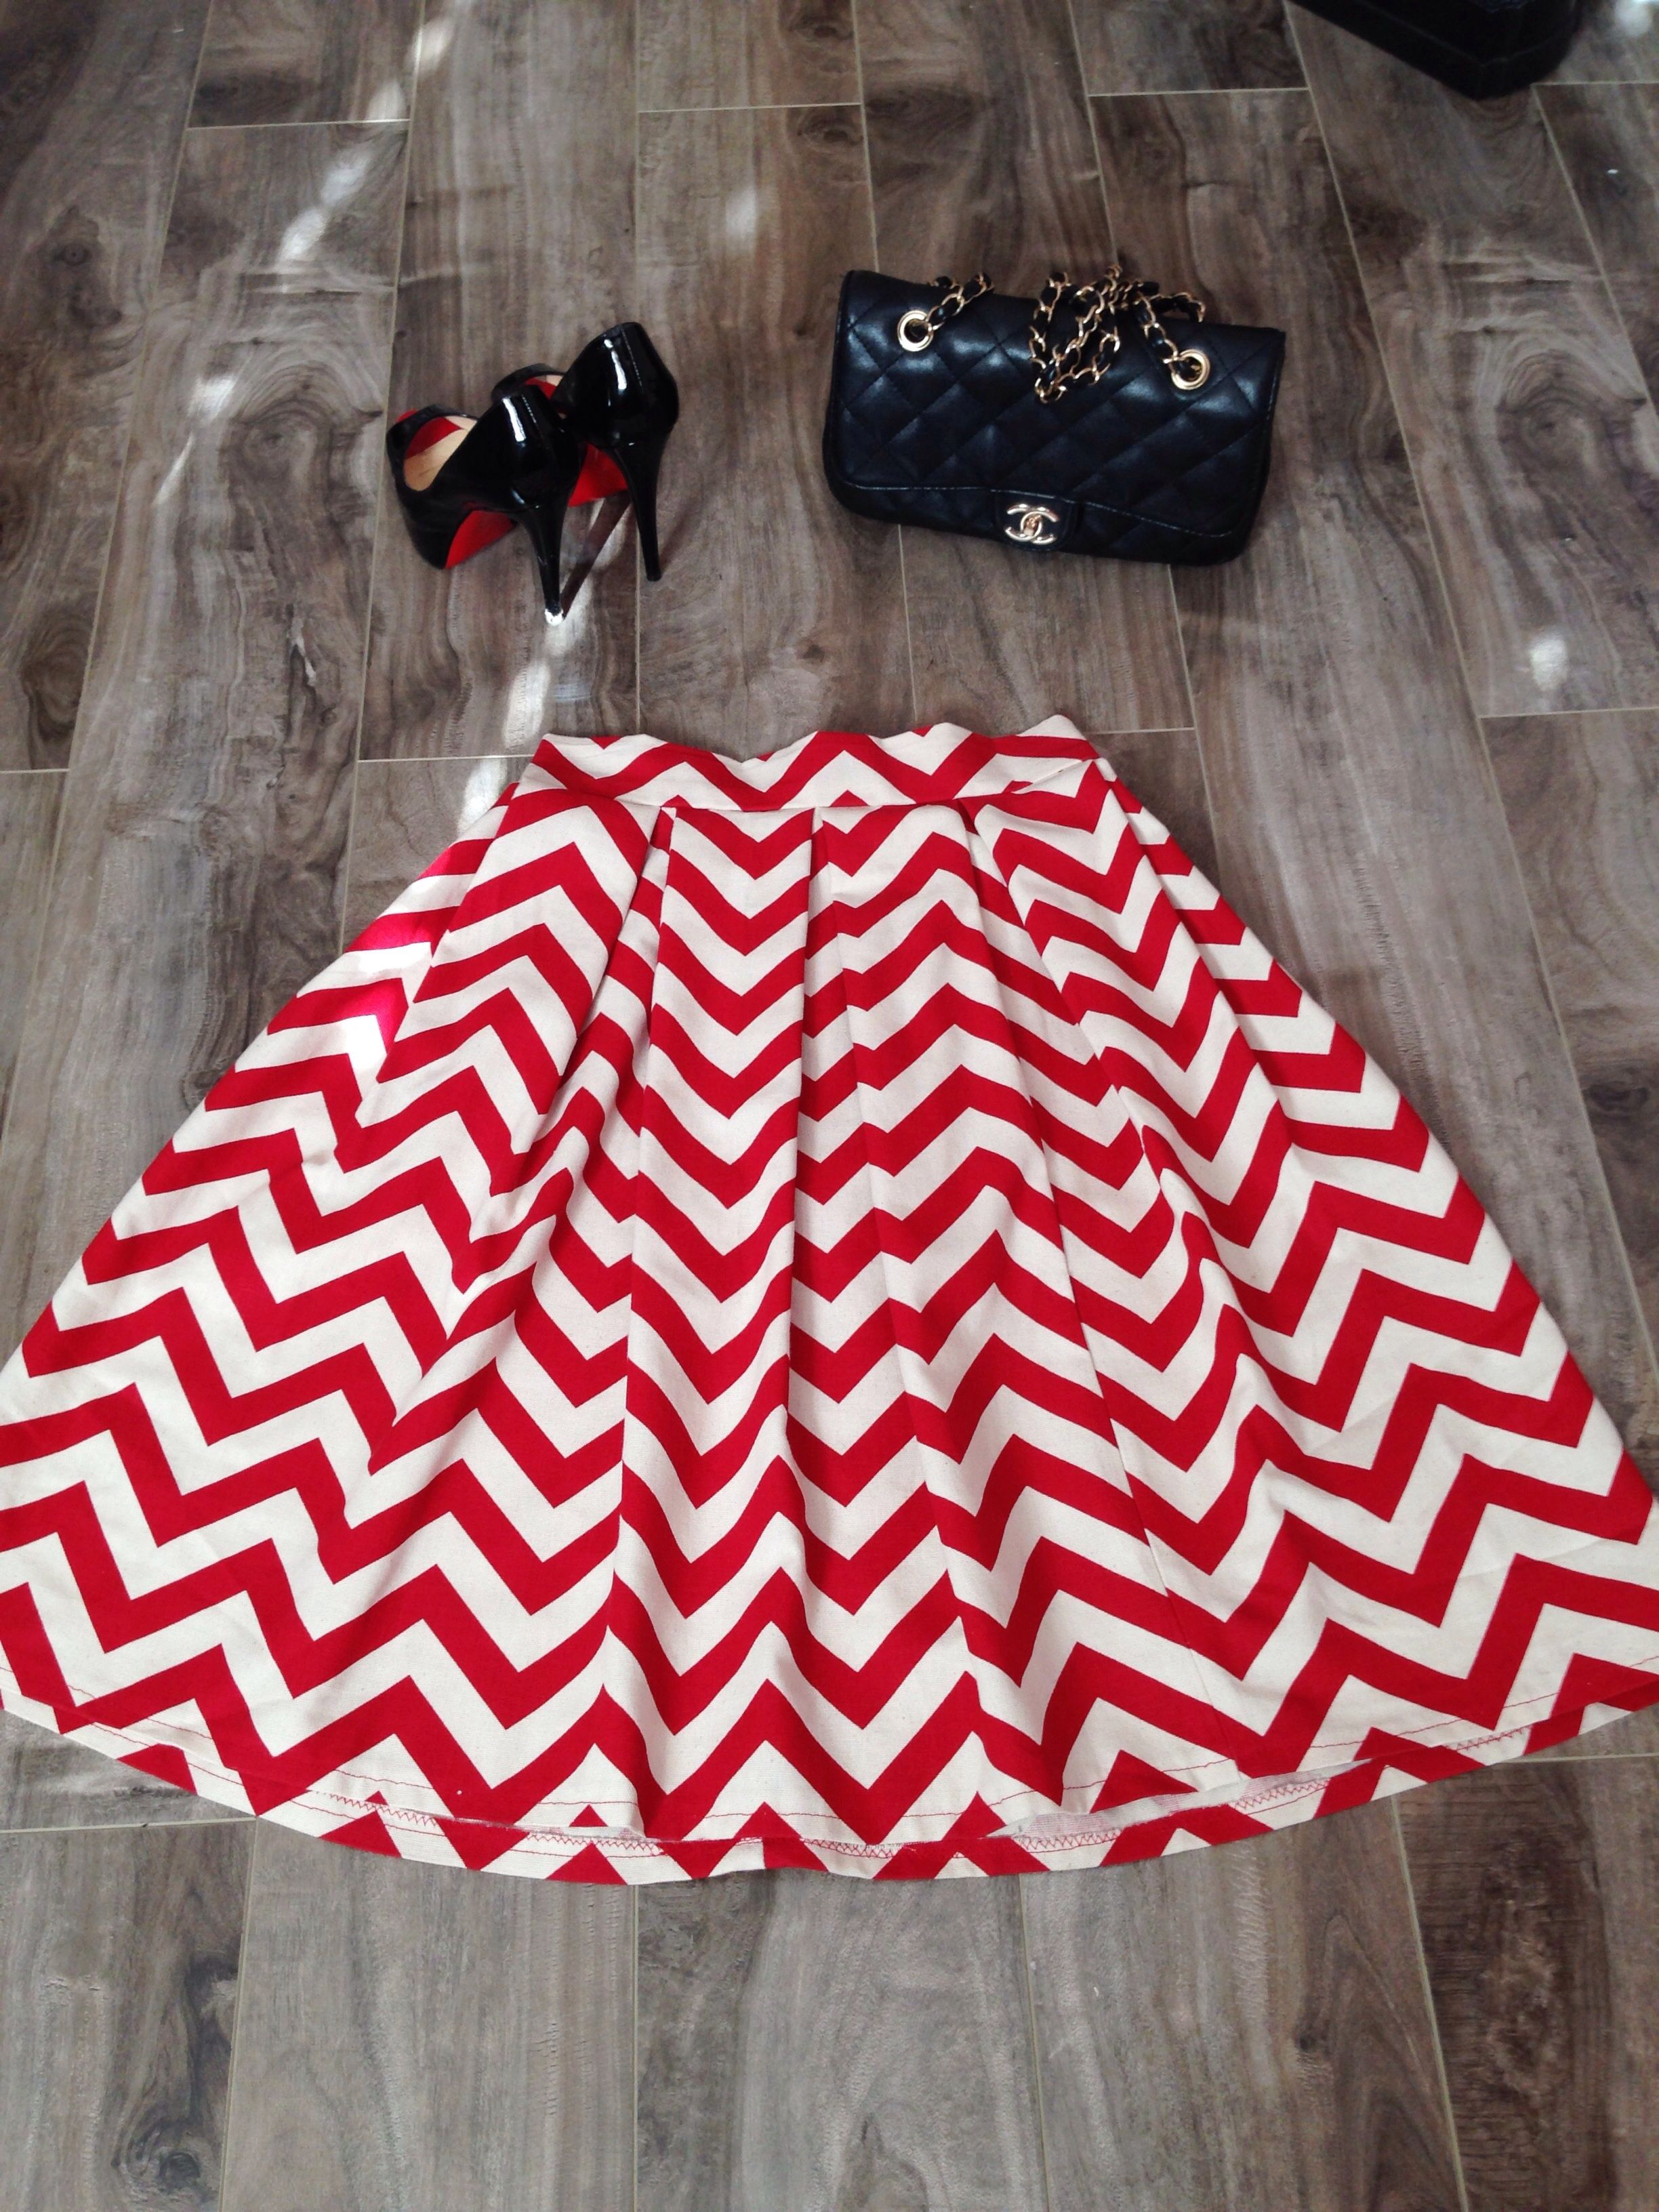 We are so excited to launch our own ModestlyHot clothing line of skirts! The A-line shape and pleats makes this skirt timeless and classic! Handmade from great quality fabric!   *Please Refer to the Sizing Guide Below before placing order, these skirts are final sale*  Size Small: 24'' Small ...